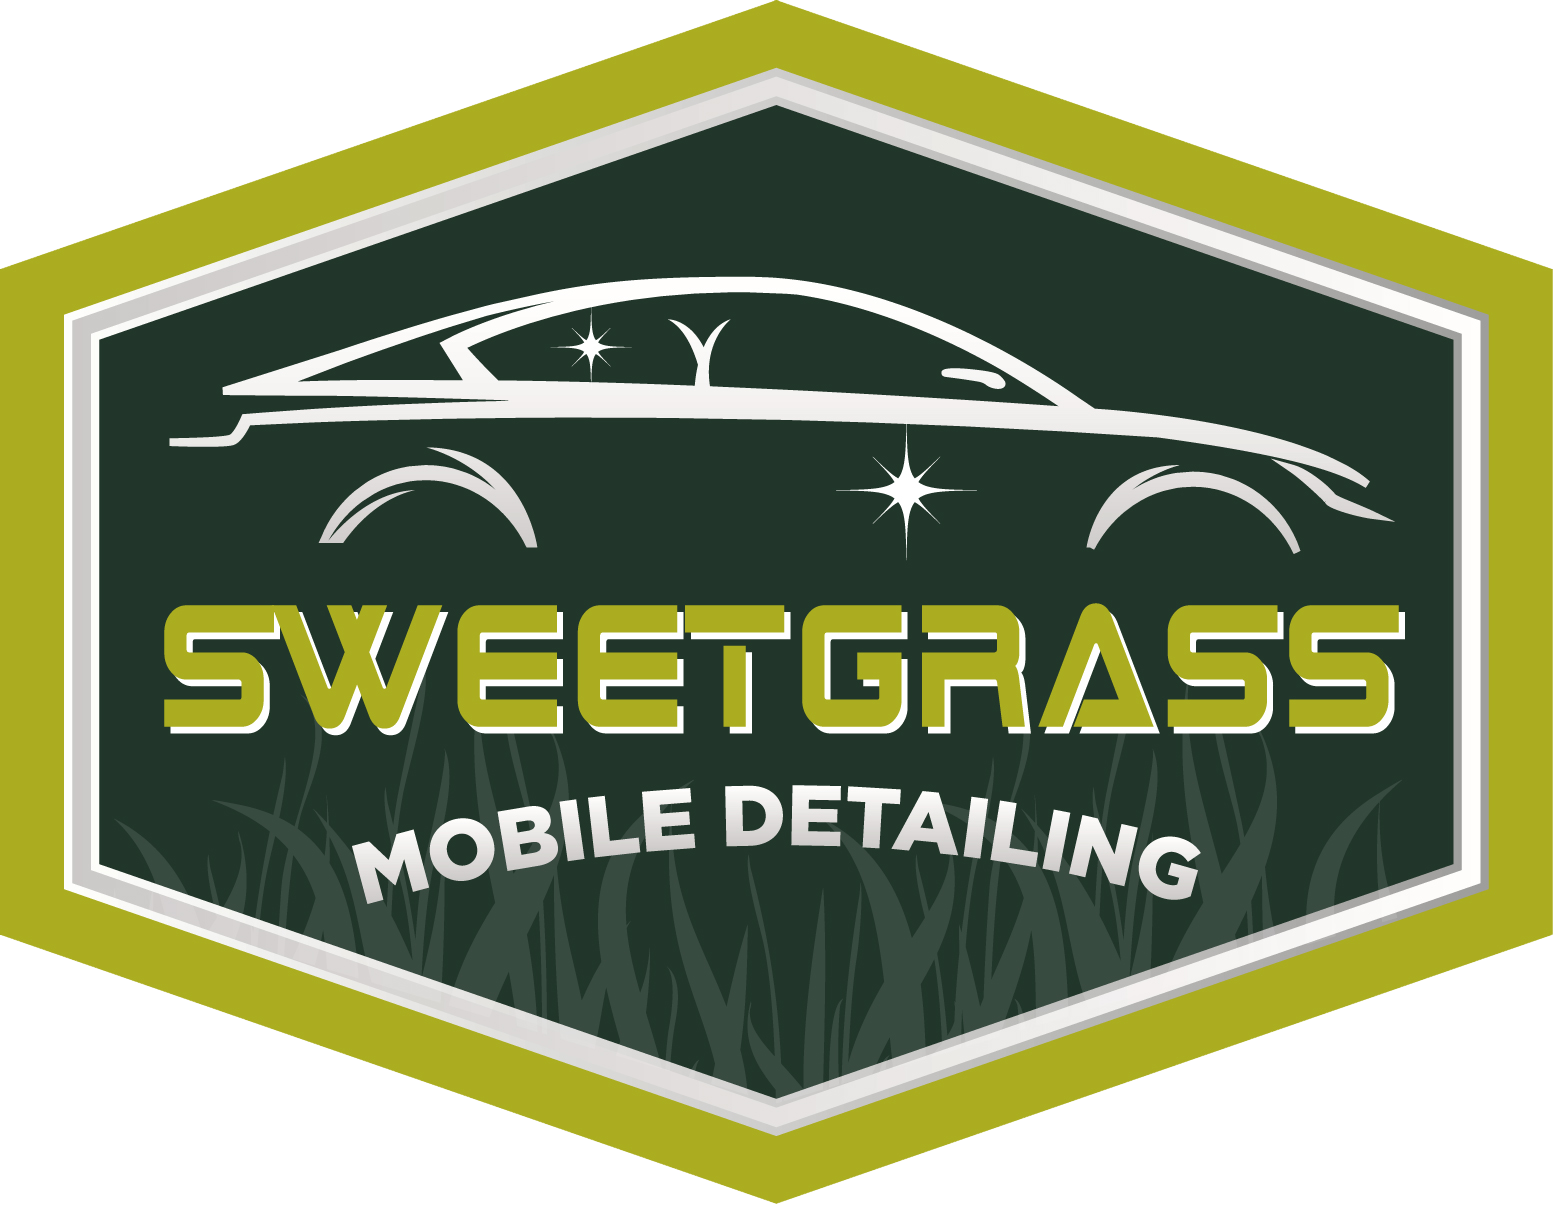 - AT SWEETGRASS MOBILE DETAILINGOUR TIME IS YOUR SHINE!